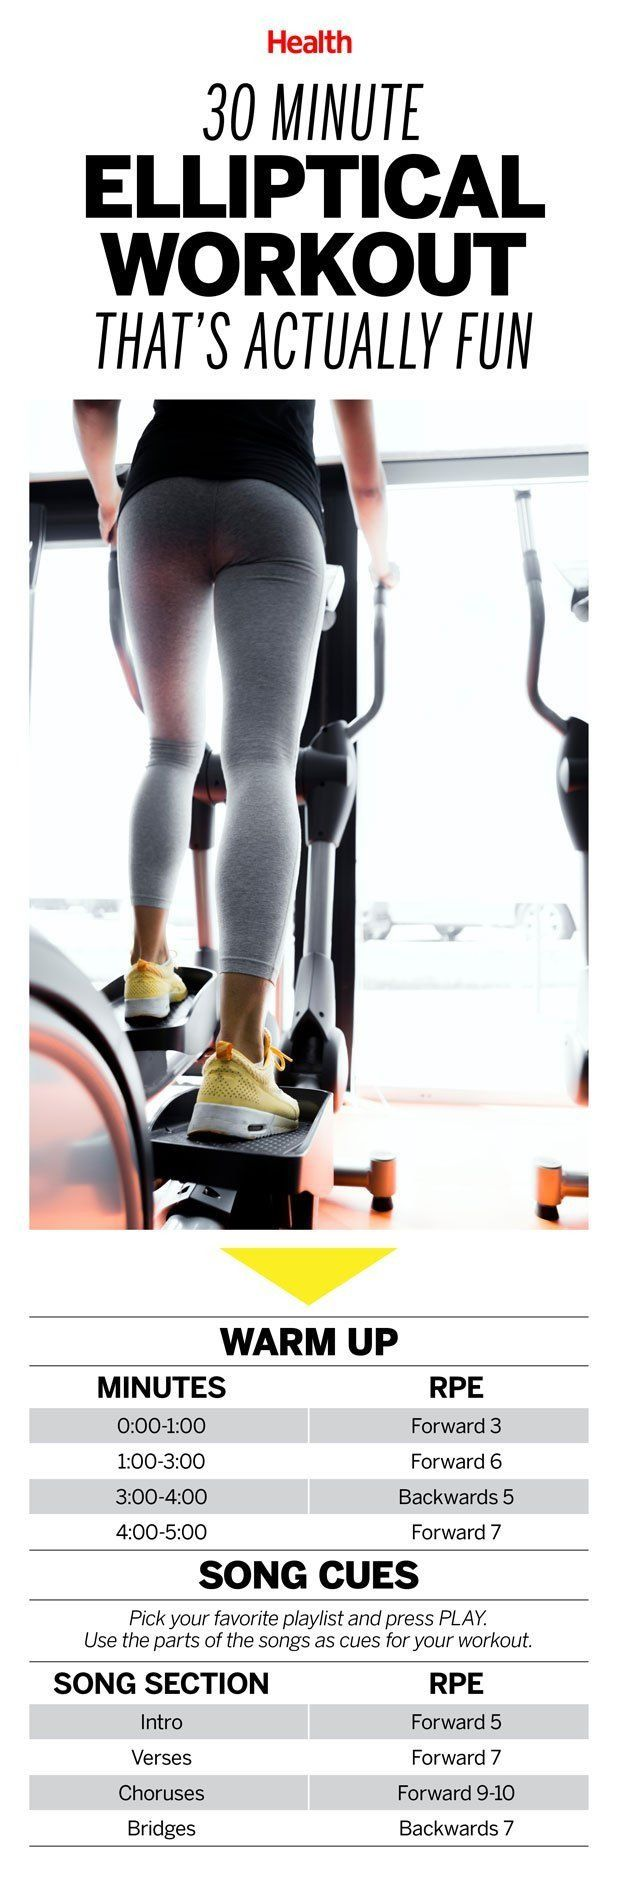 The elliptical is one of the few exercise machines that works your entire body (arms, legs, and core) with little impact on your joints. Try changing this up with this elliptical workout plan that's actually fun!